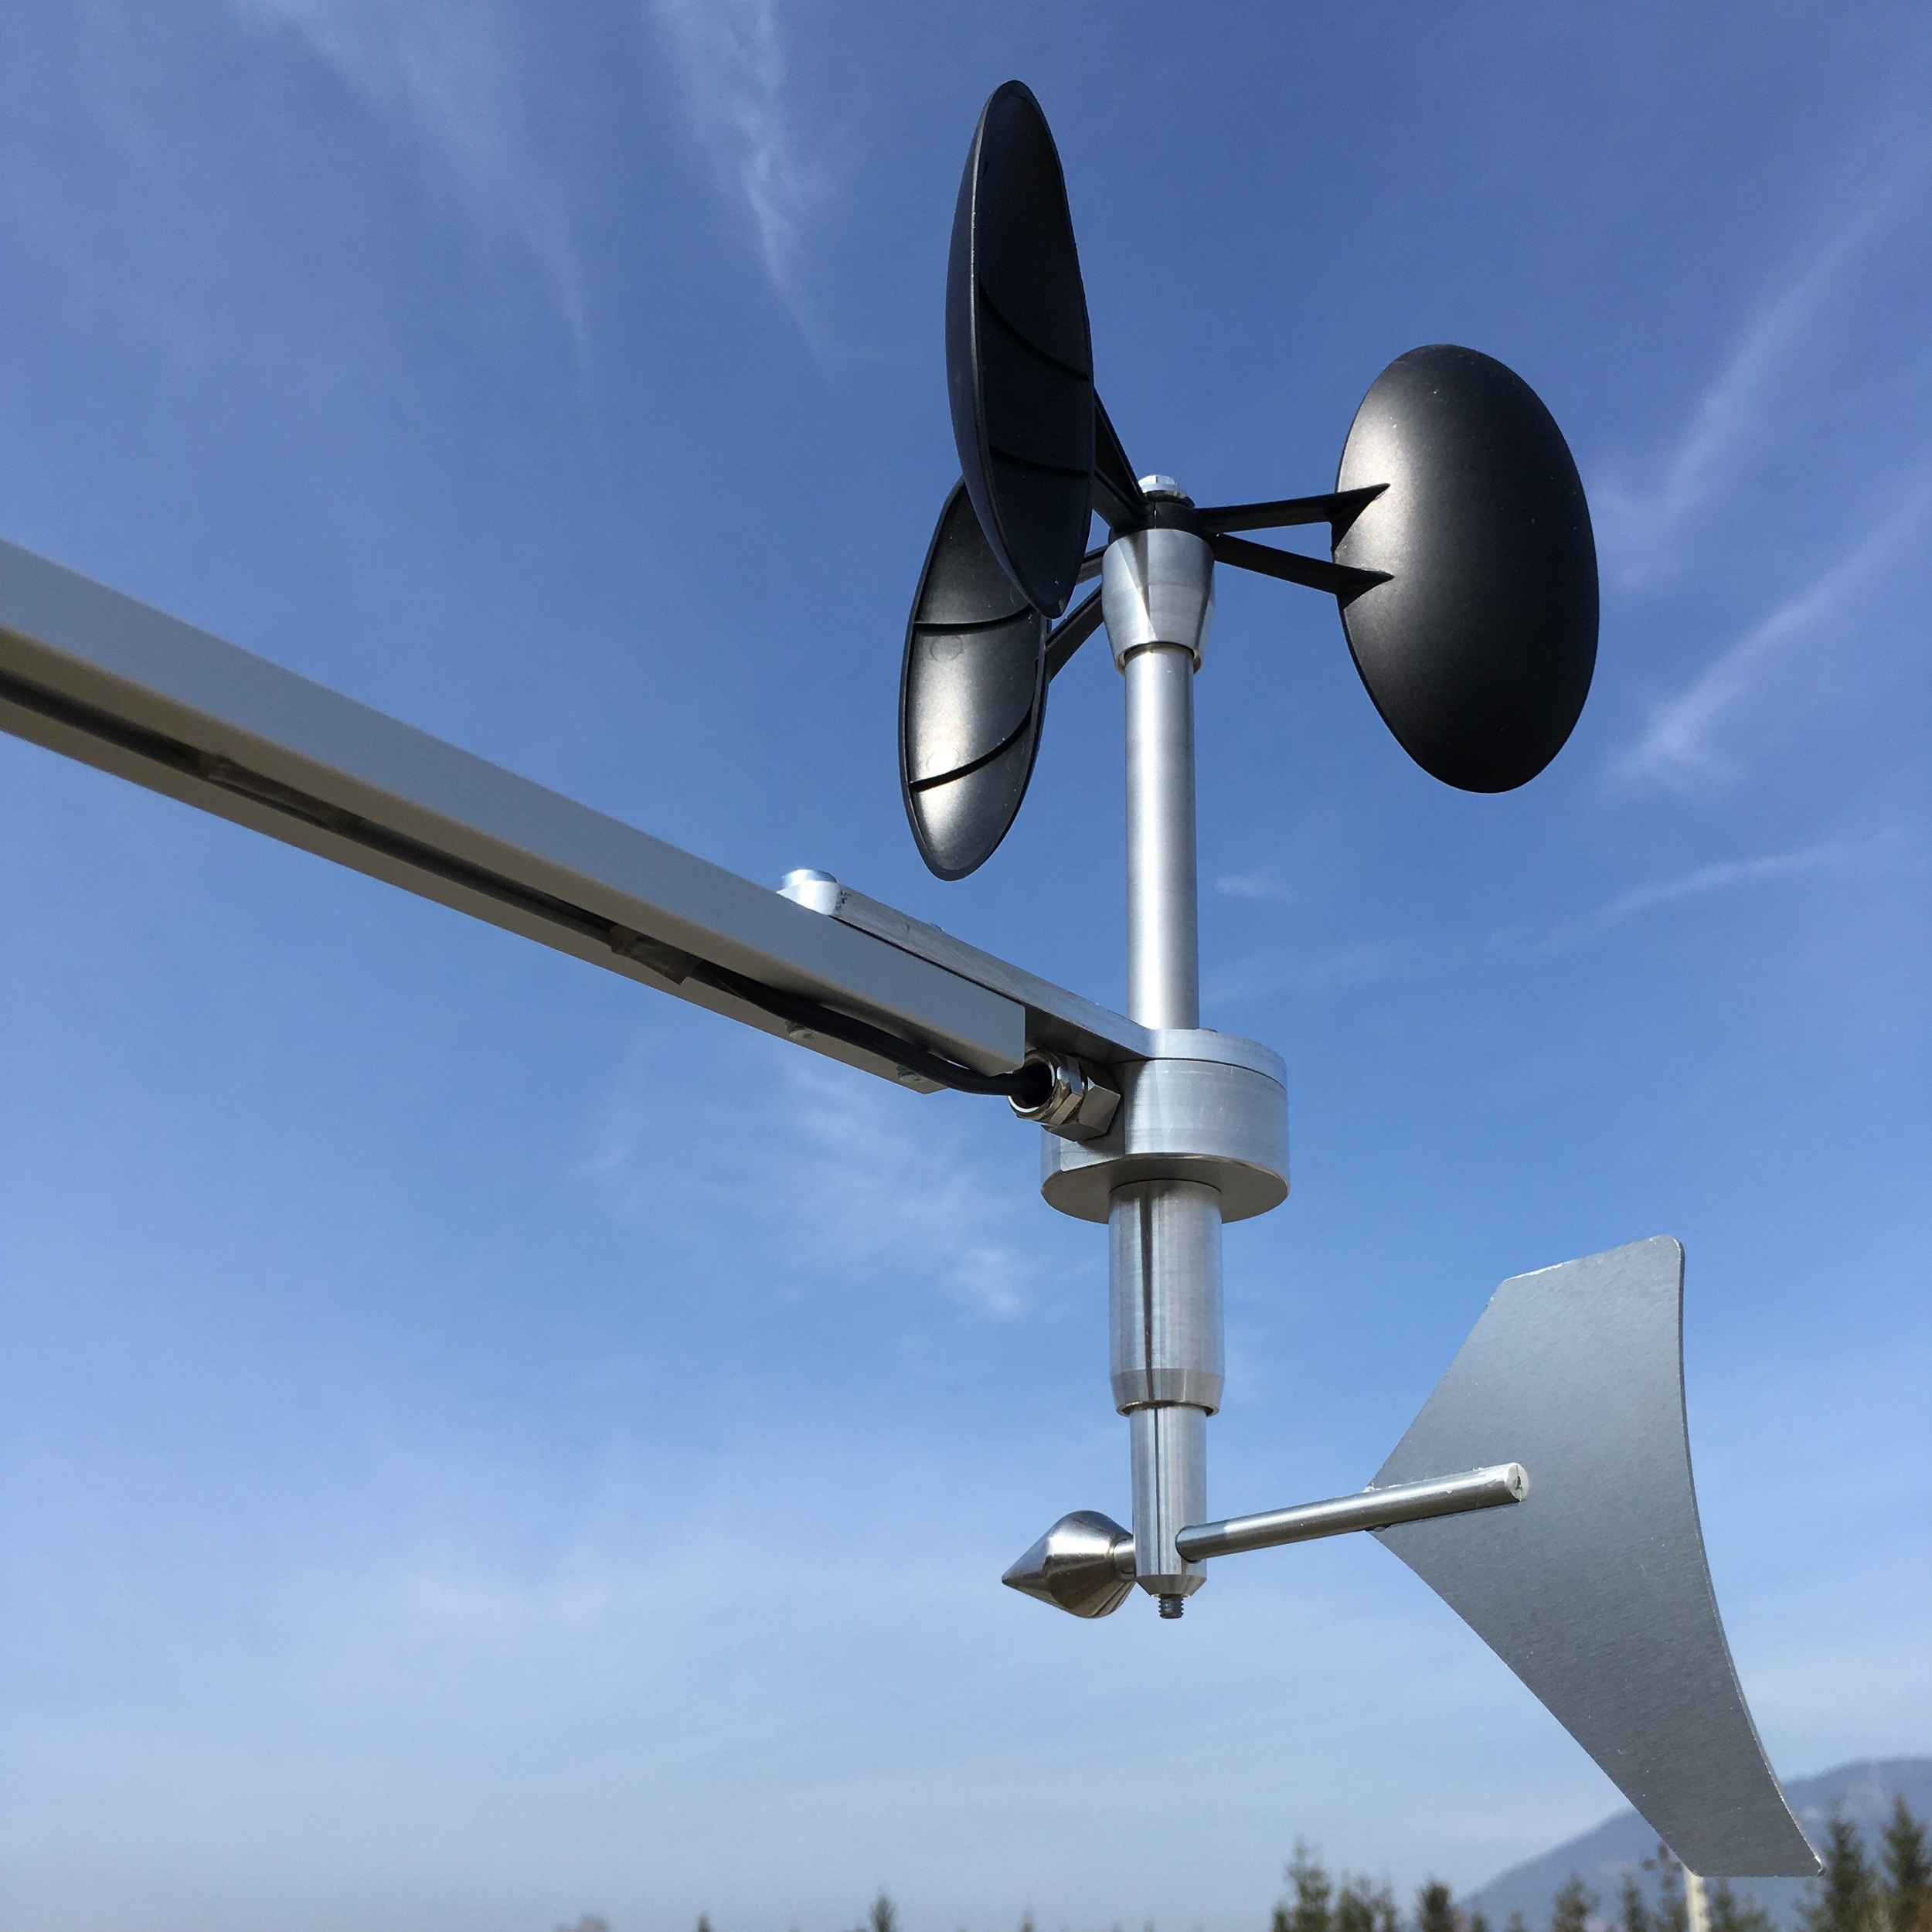 MeteoWind Compact with WindIoT transmitter for environmental monitoring